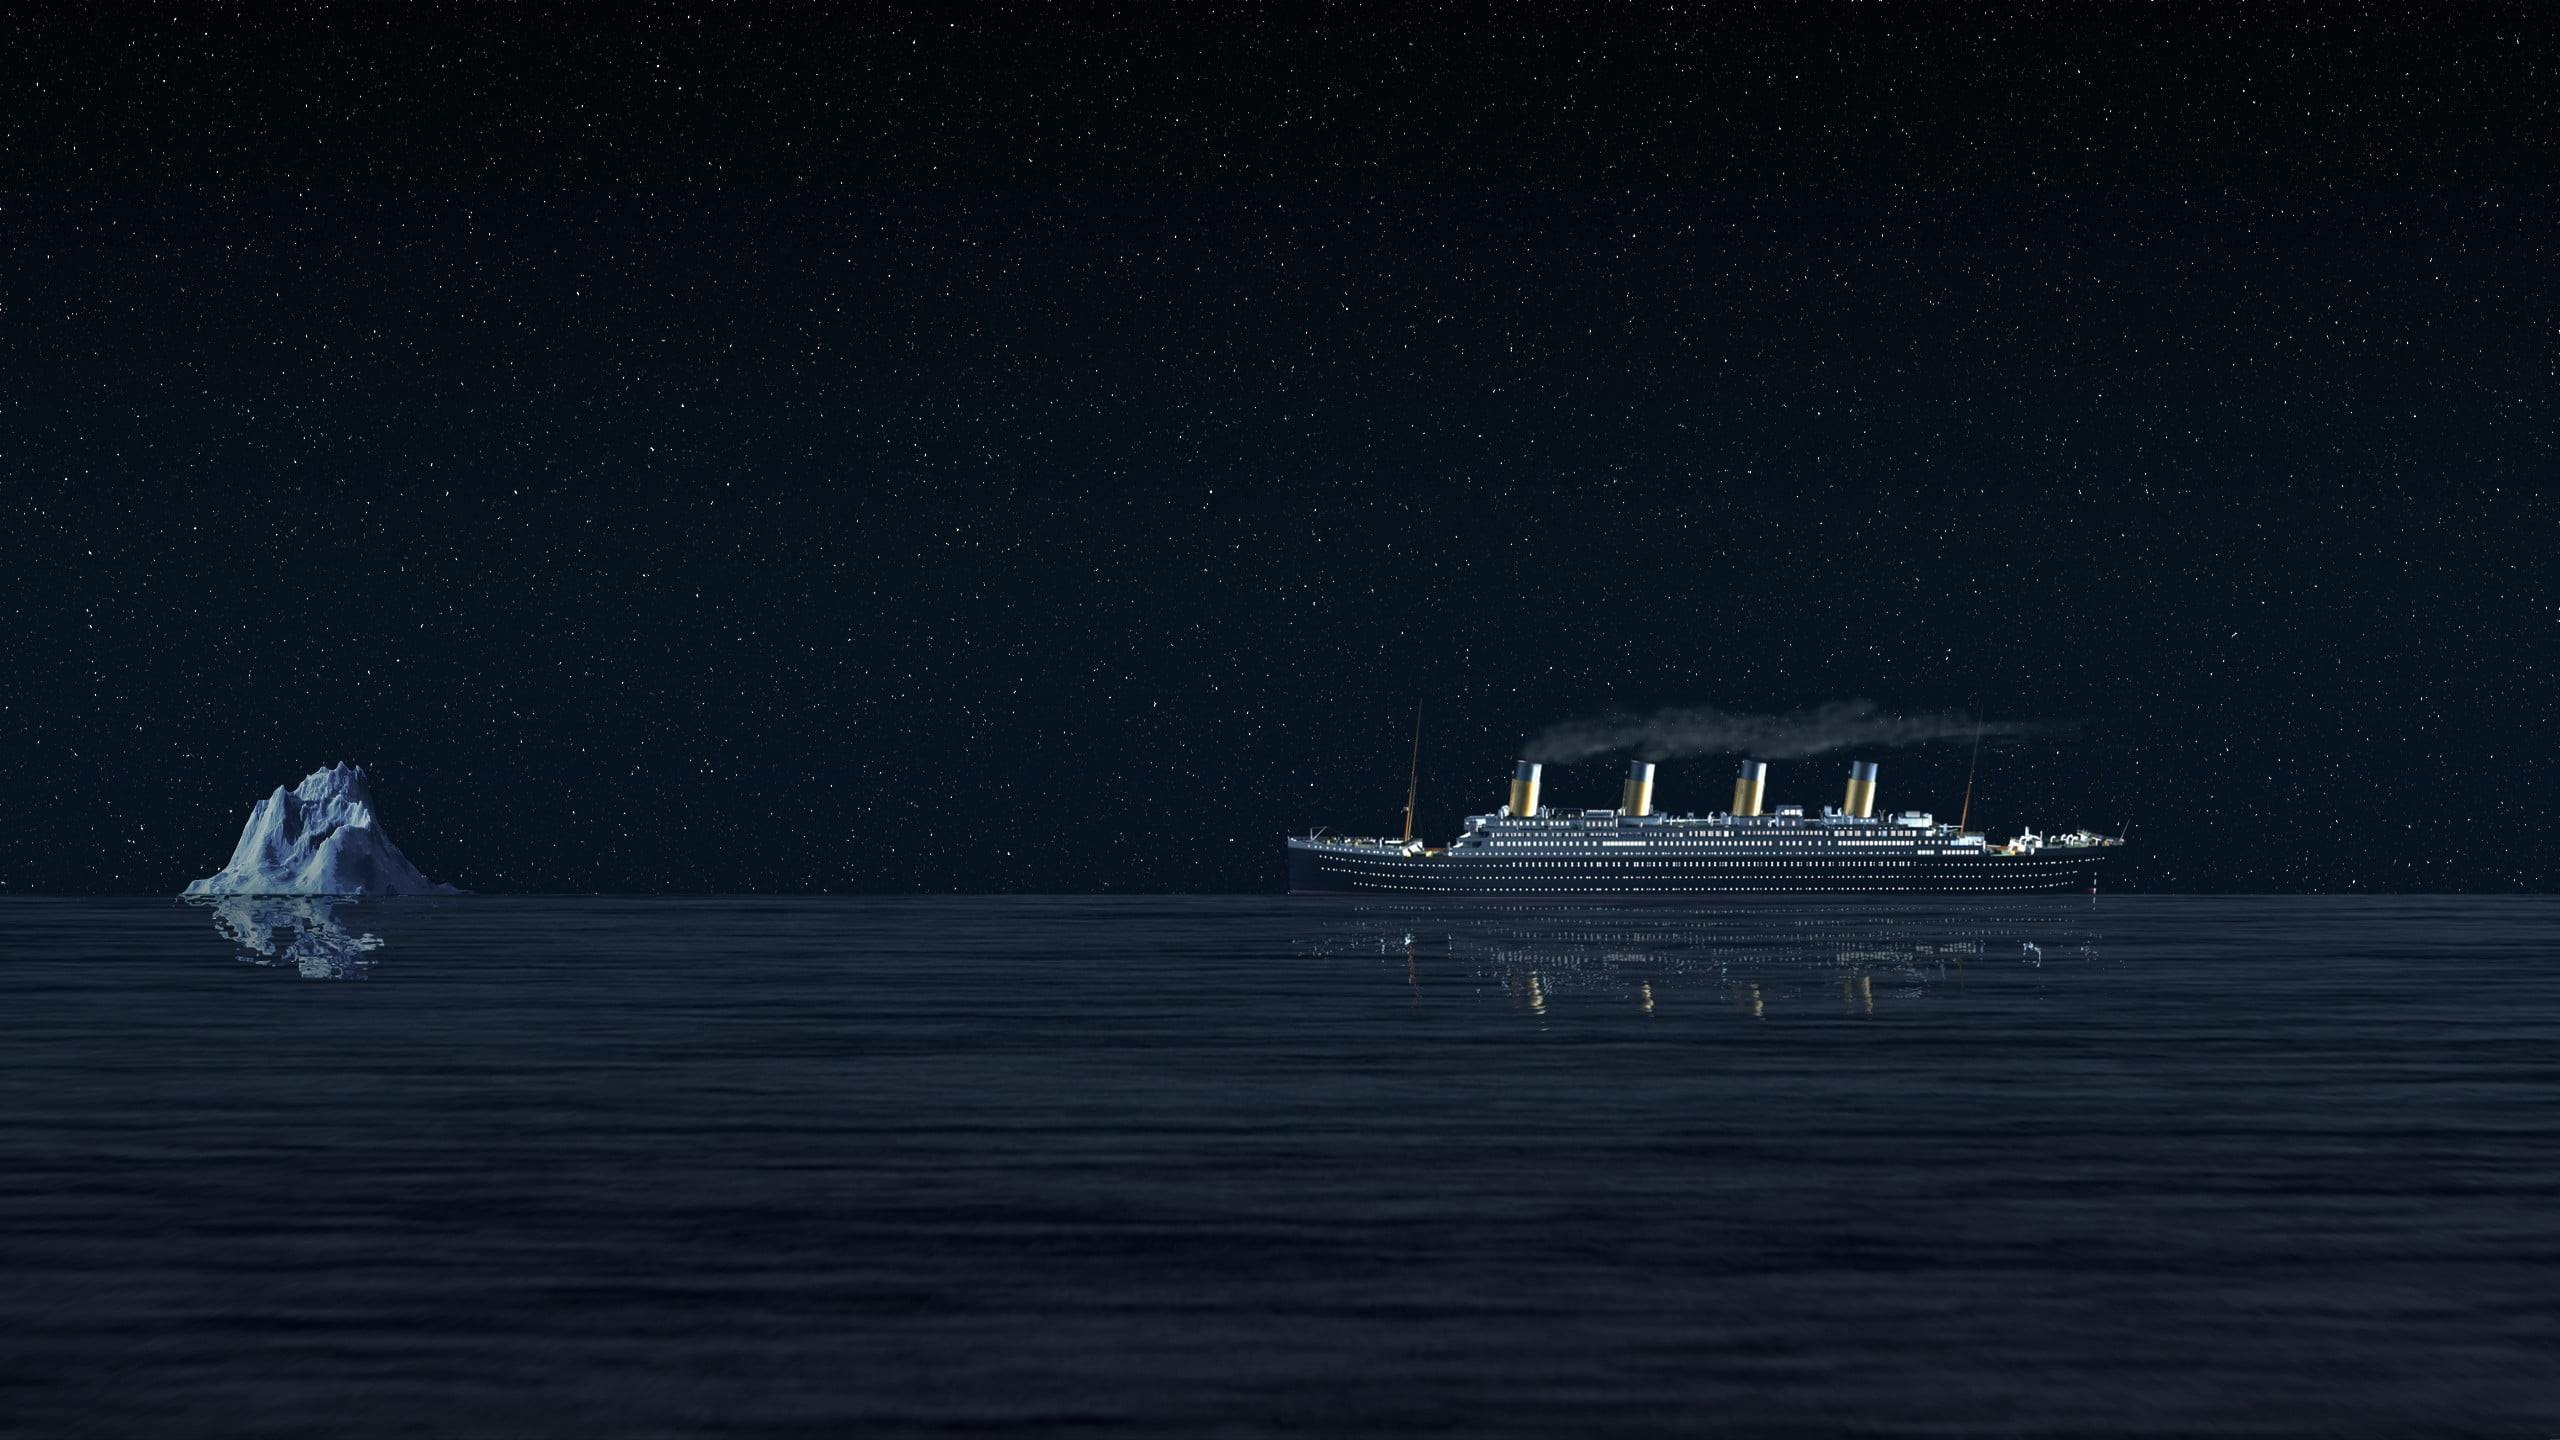 Titanic ship wallpapers 66 background pictures - Titanic hd wallpaper download ...